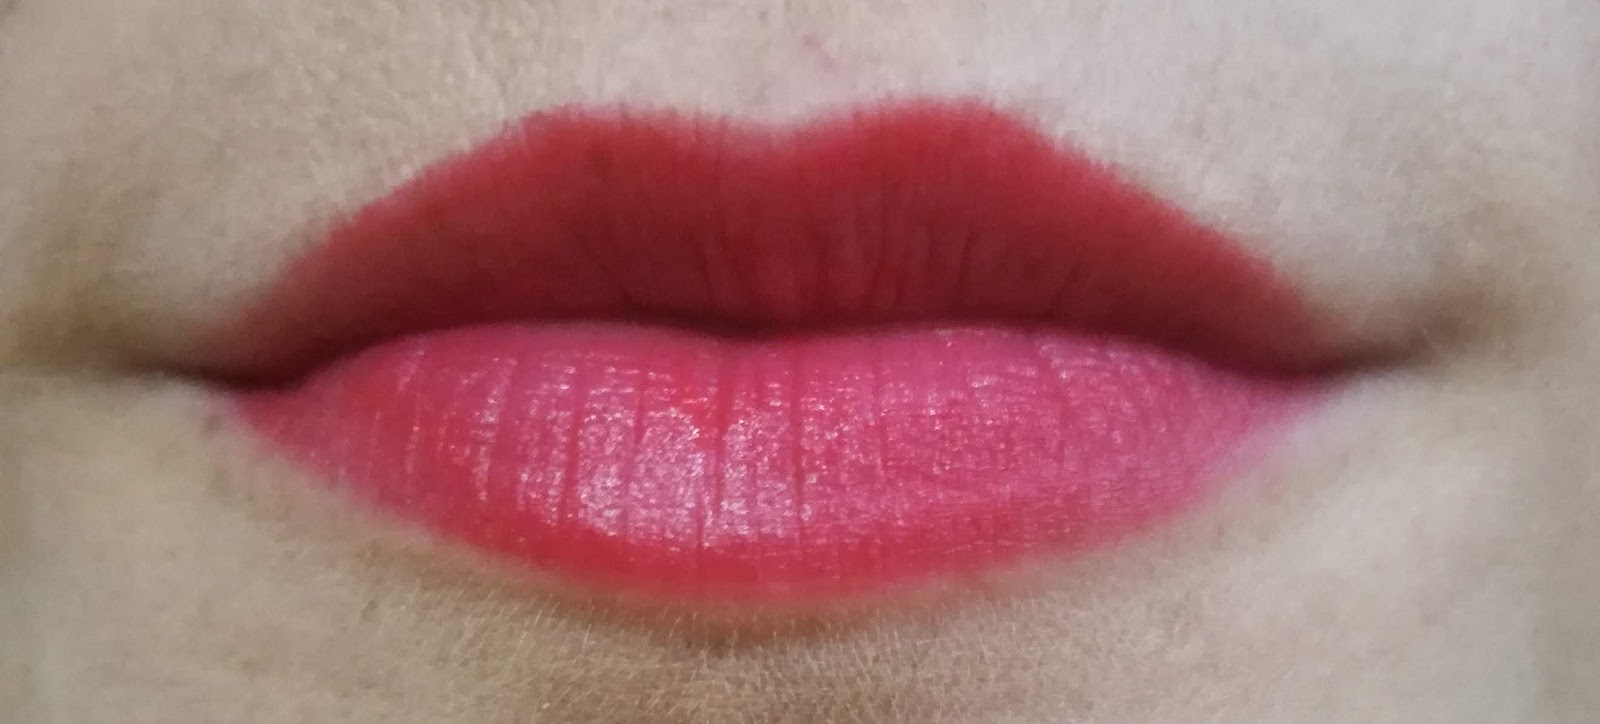 essence-kisses-from-italy-limited-edition-review-mini-lipstick